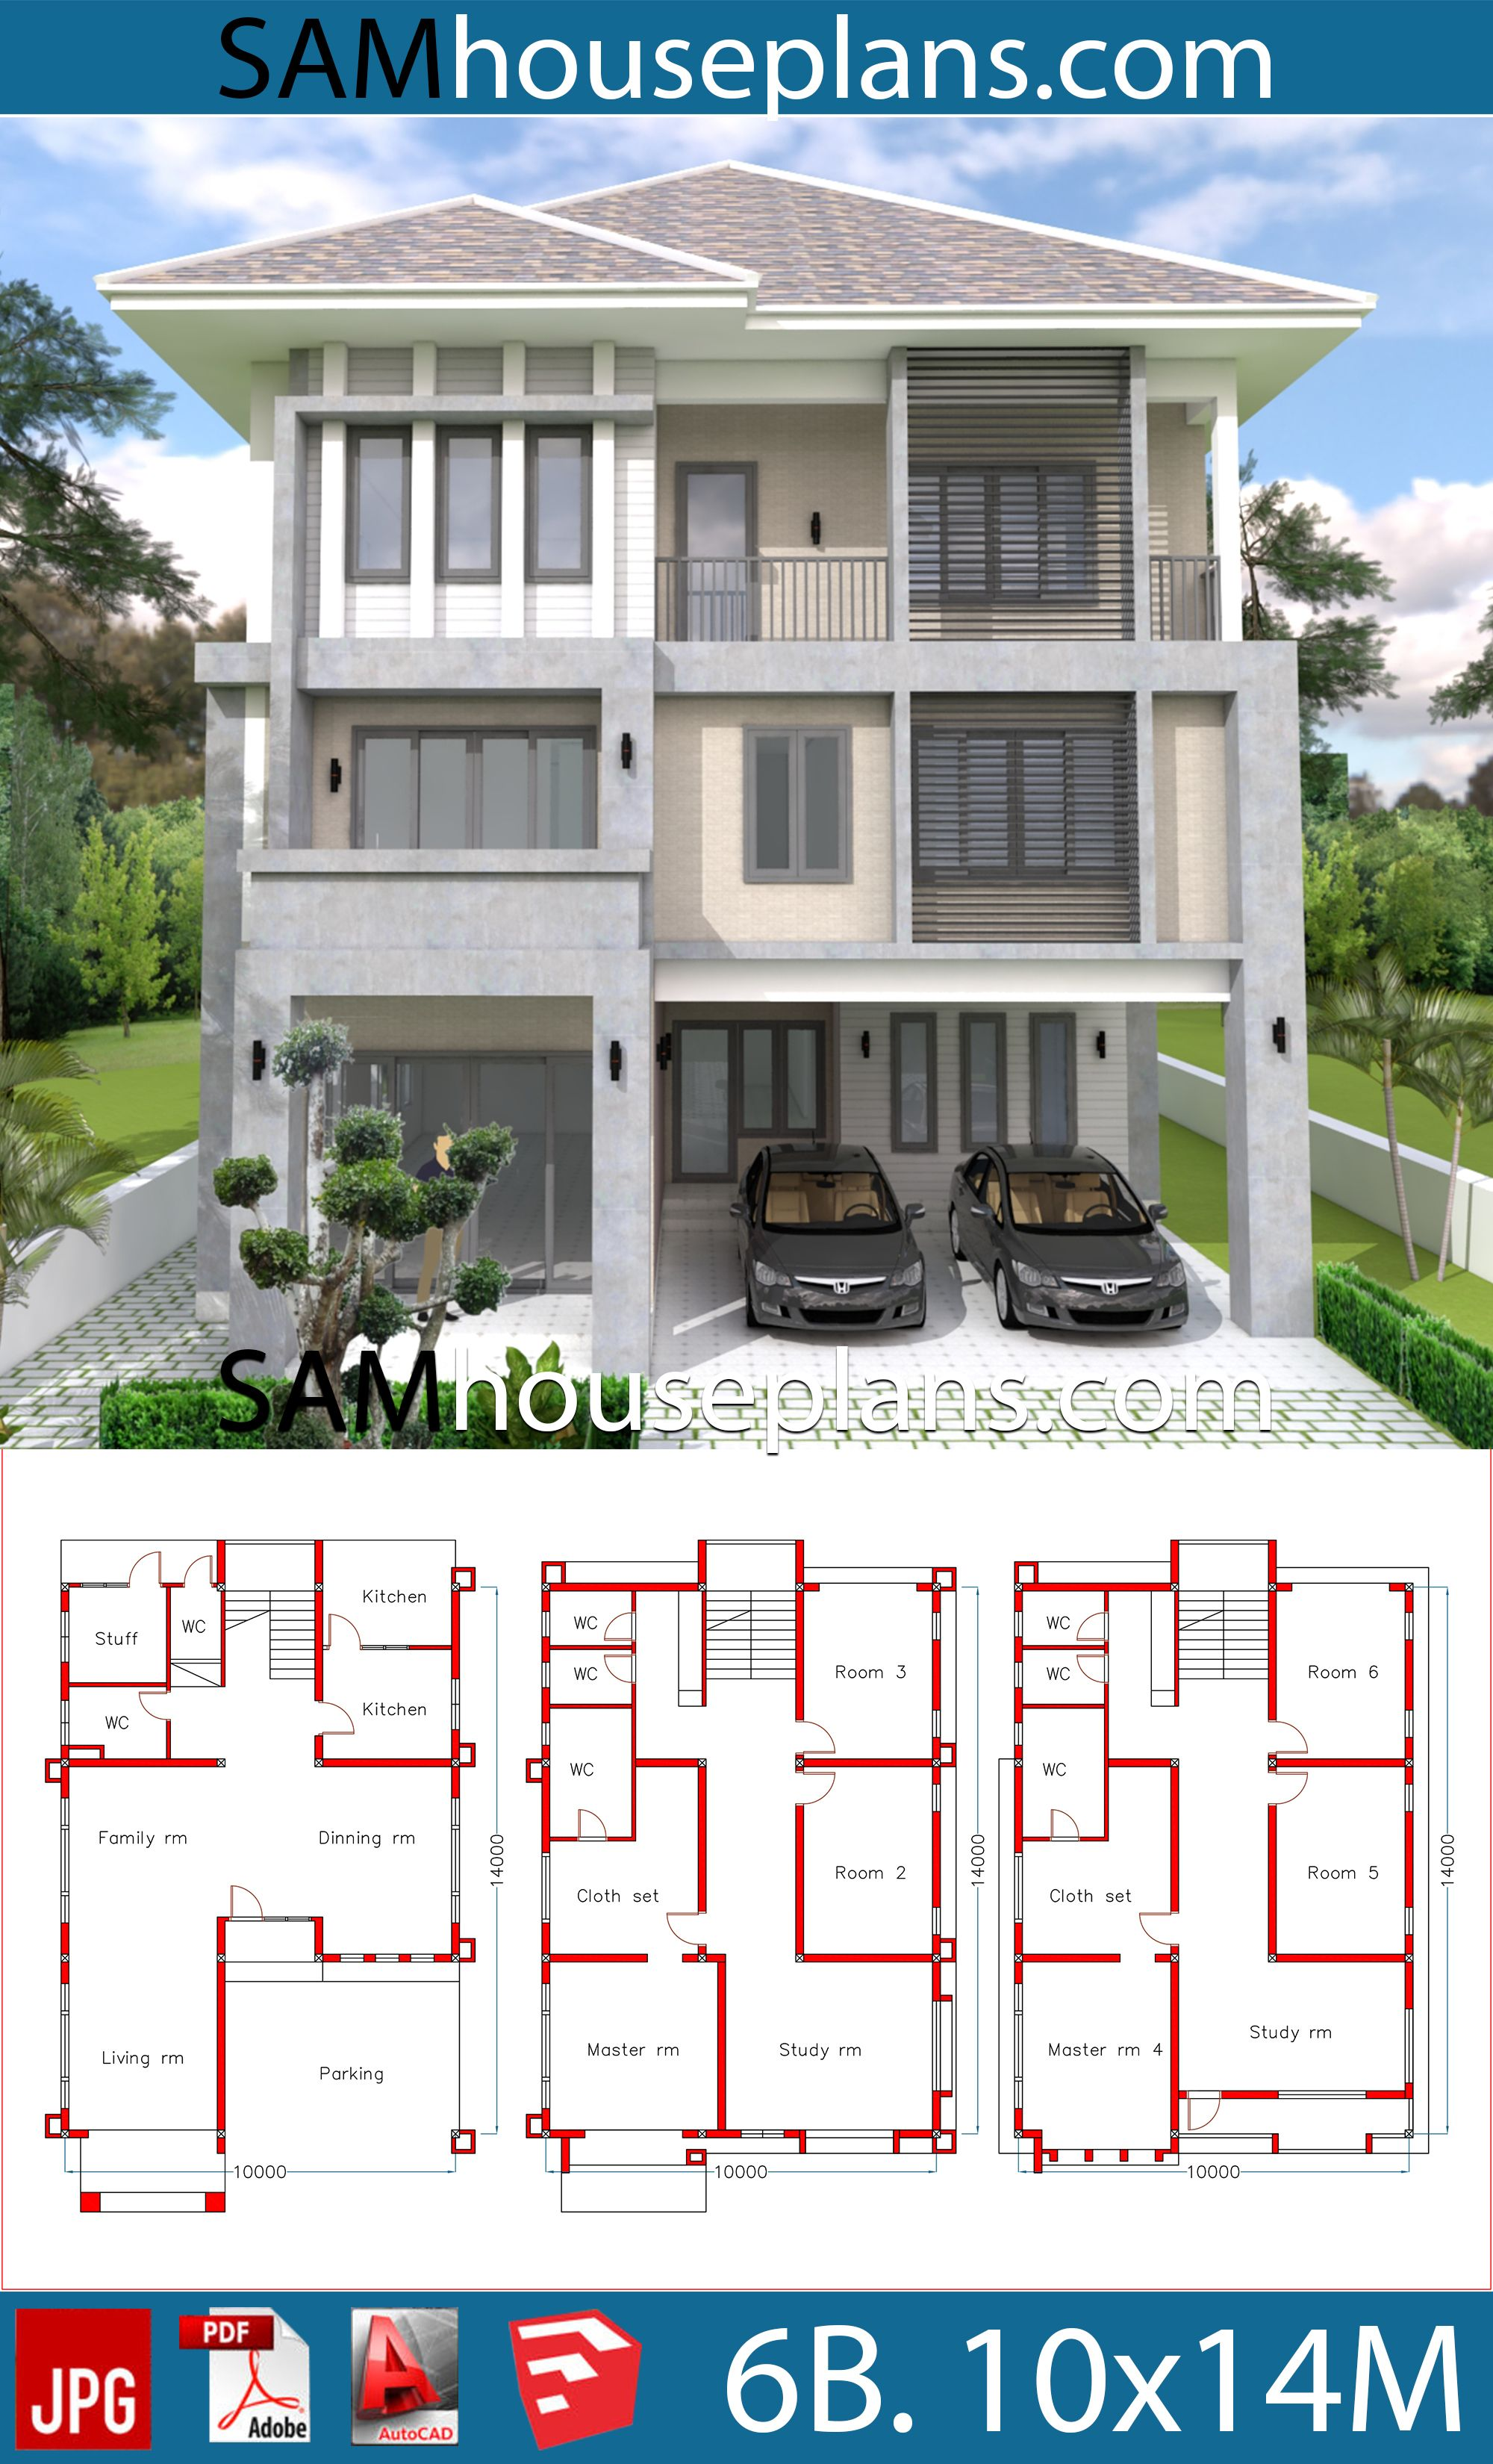 House Plans 10x14 With 6 Bedrooms House Plans Free Downloads Modern House Plans 6 Bedroom House Plans Model House Plan